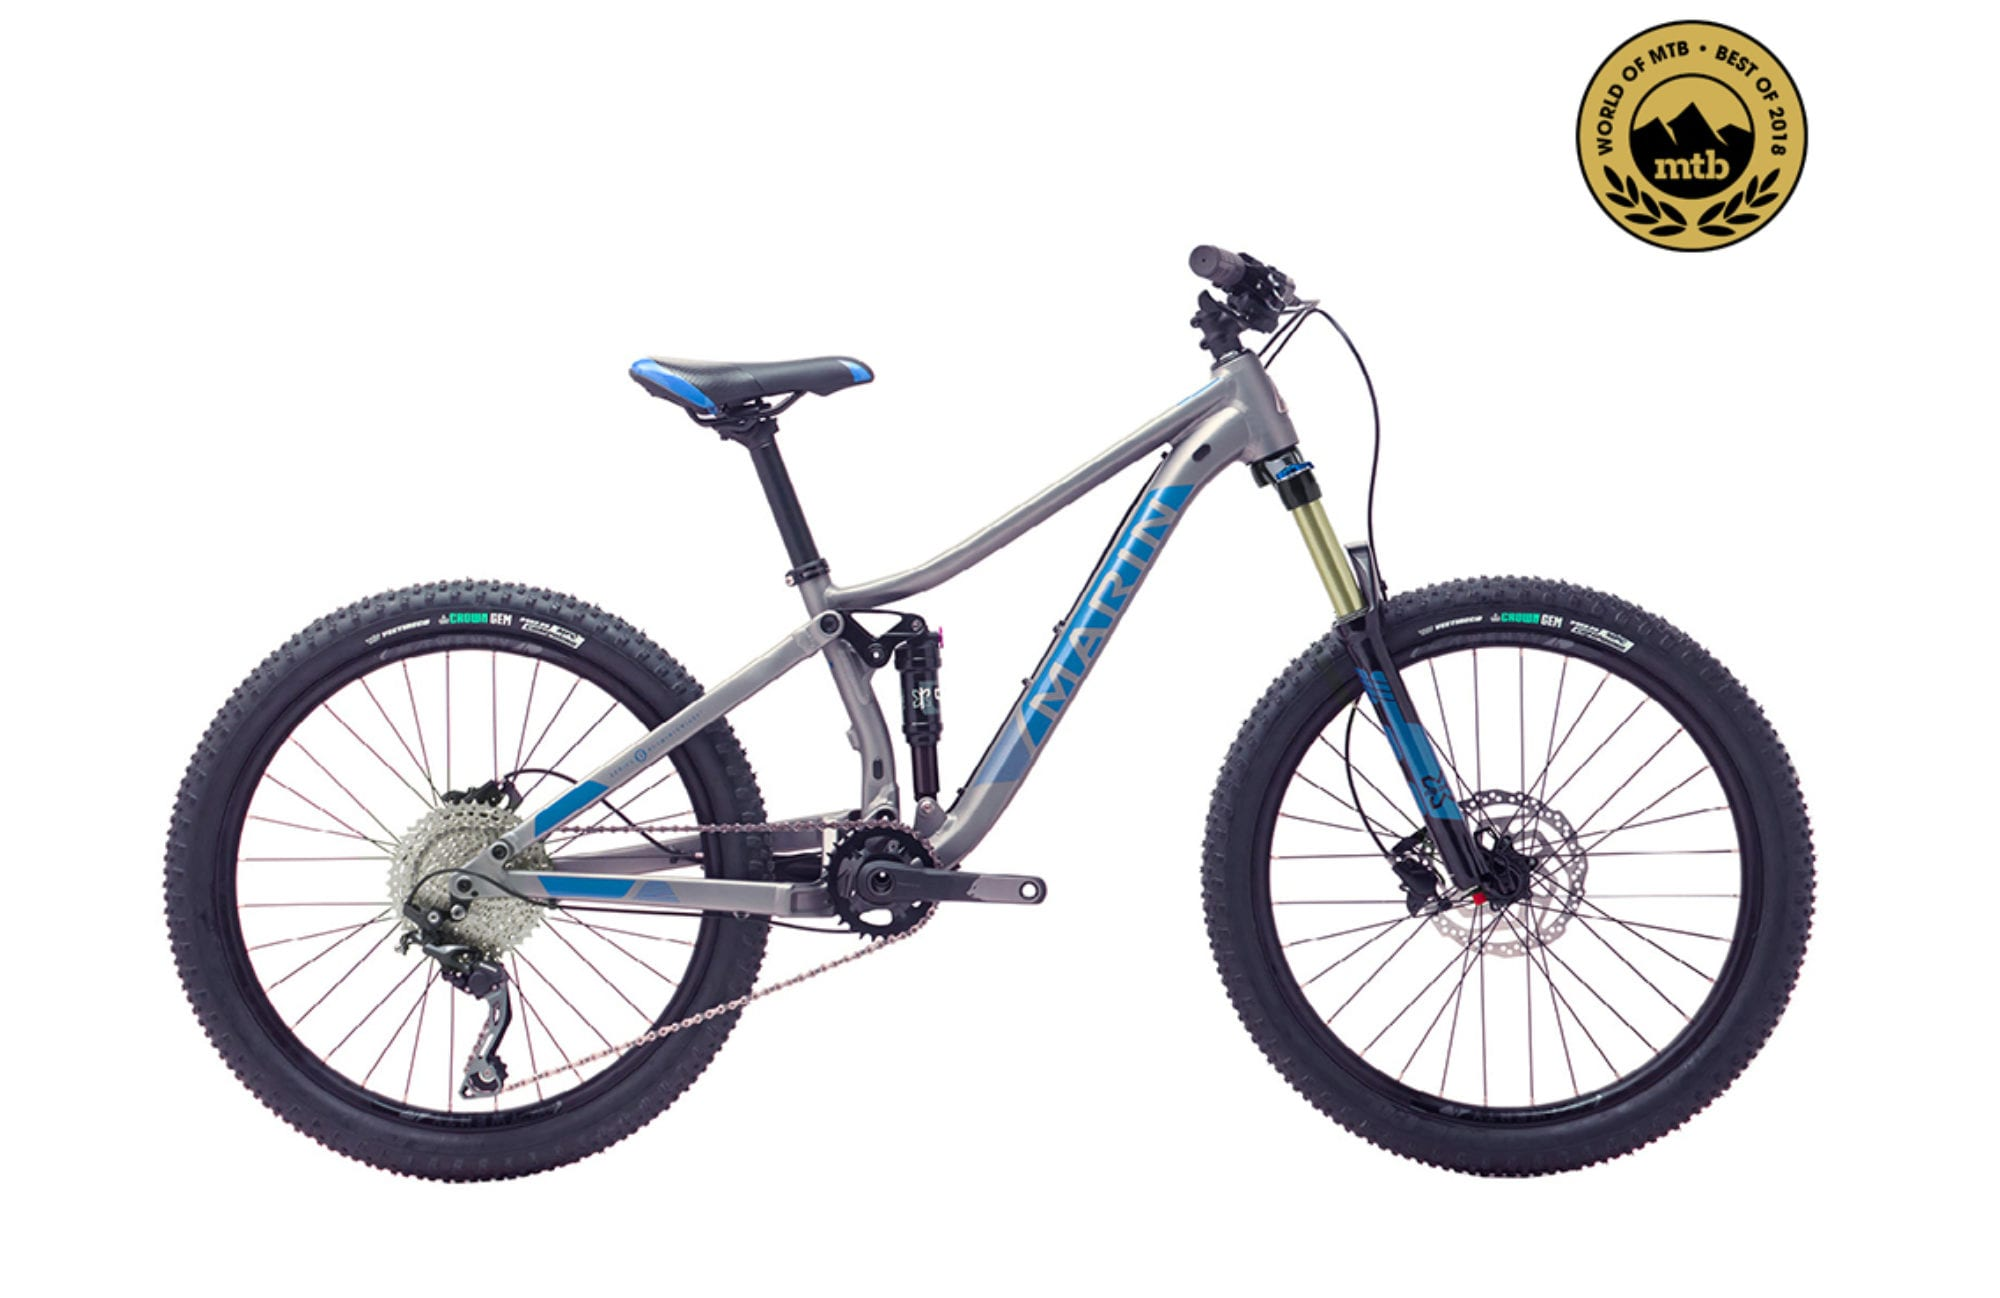 00_web_product_sizing_0008_HawkHillJRC1_worldofmtb